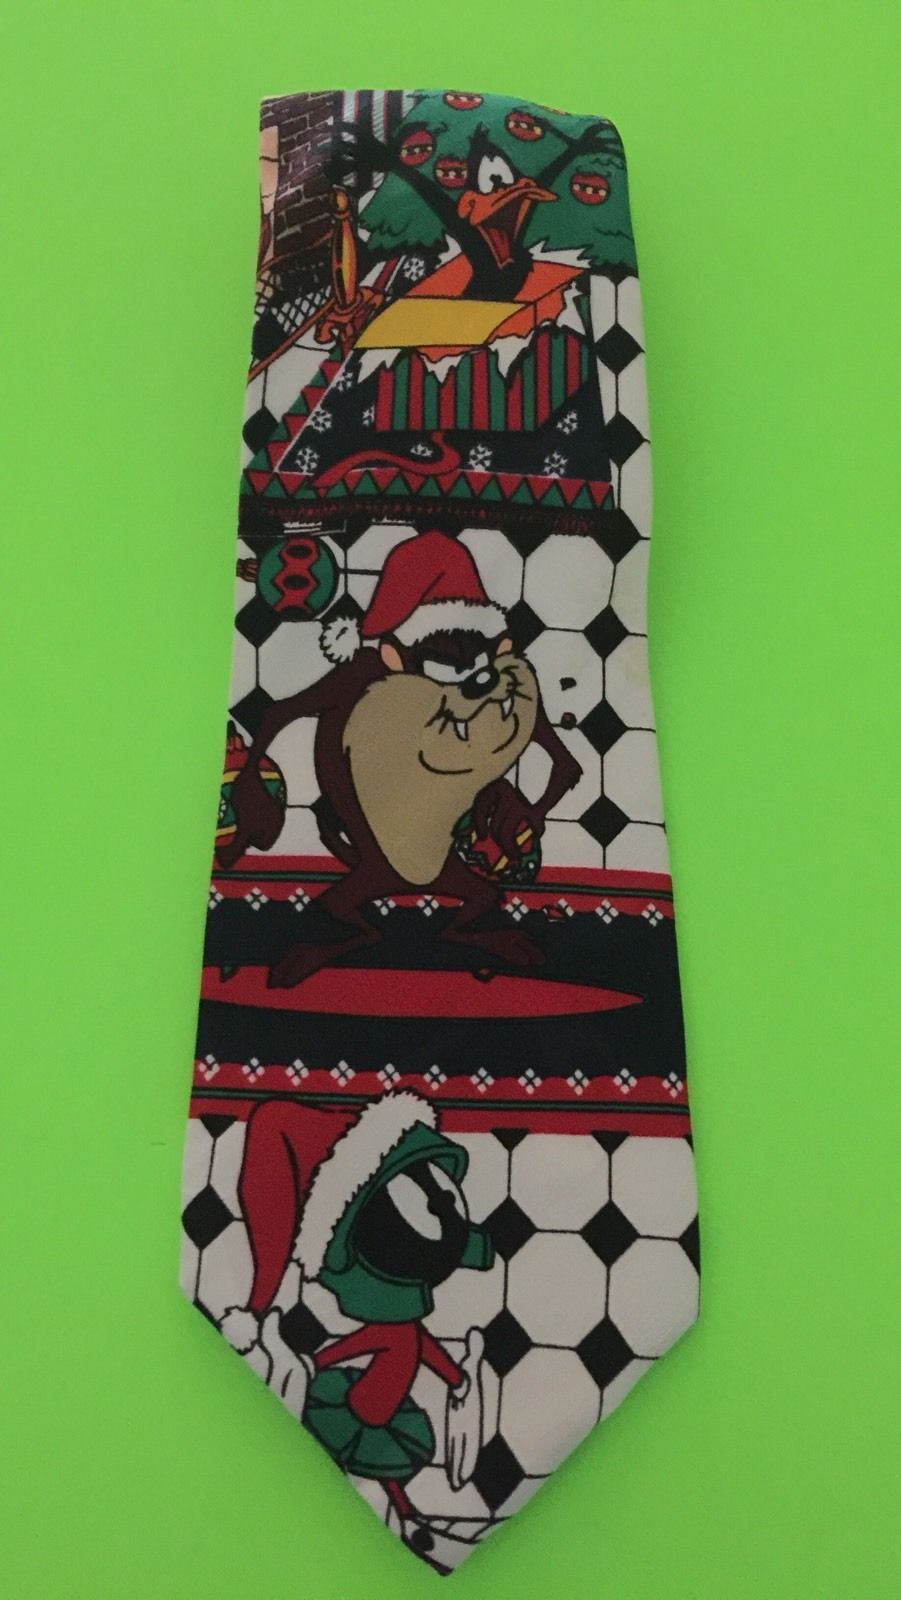 Primary image for Vintage 1995 Warner Bros Looney Tunes Mania Christmas Characters Neck Tie Gift